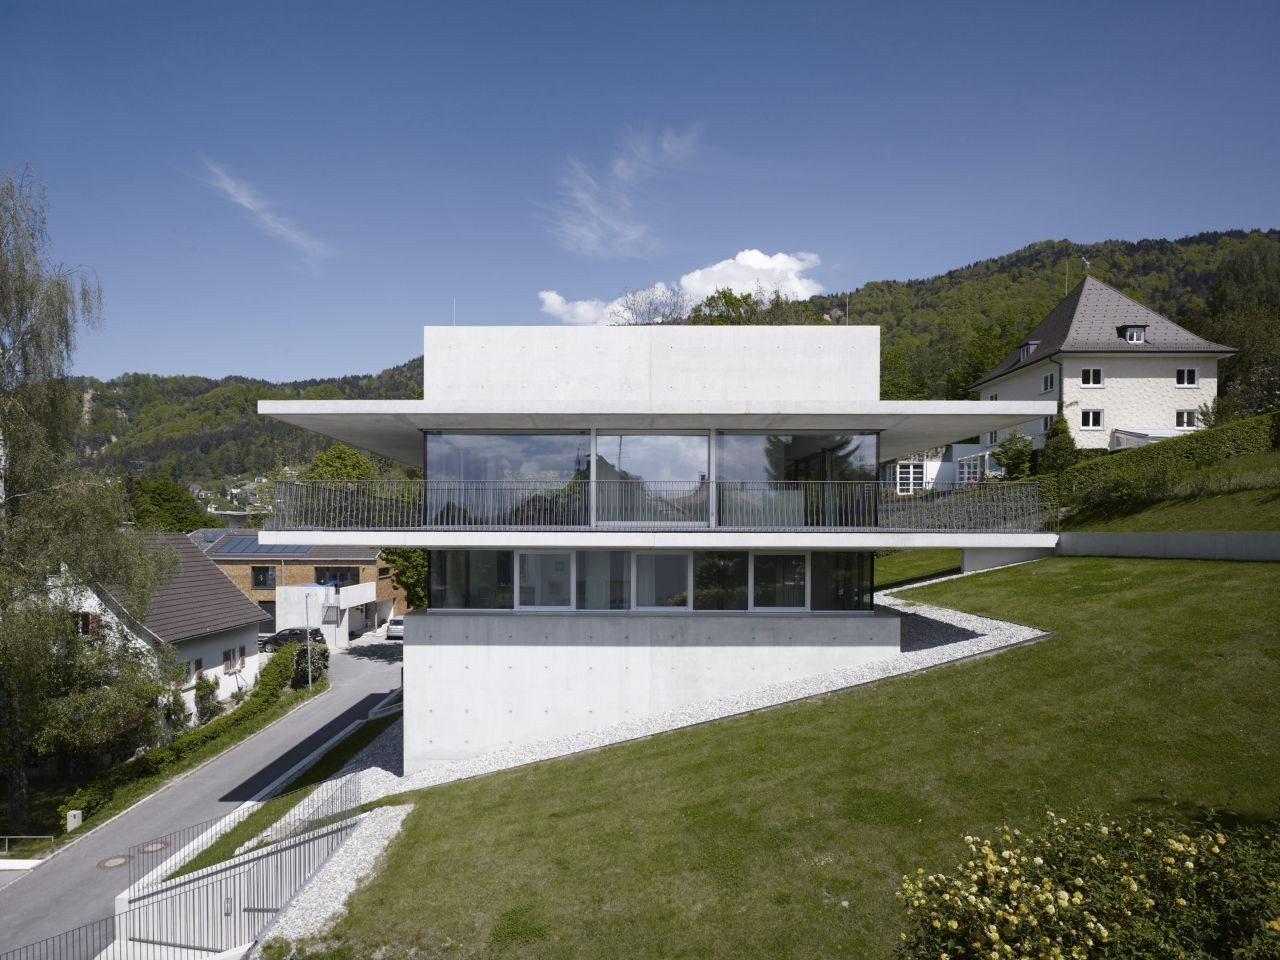 Gallery of House by the Lake / marte.marte Architekten - 1